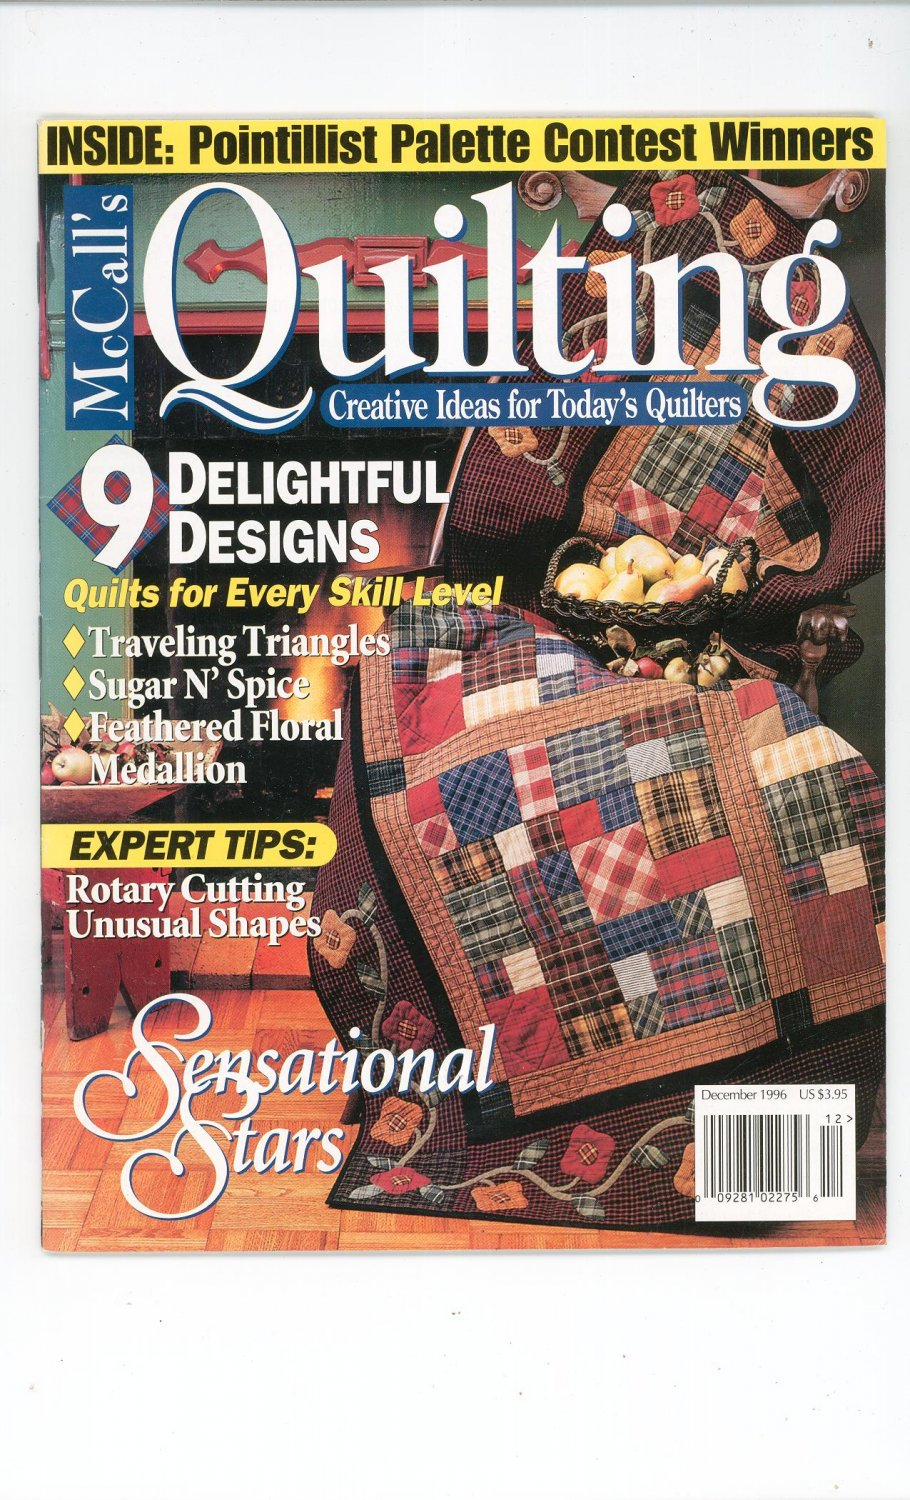 McCall's Quilting Magazine Back Issue December 1996